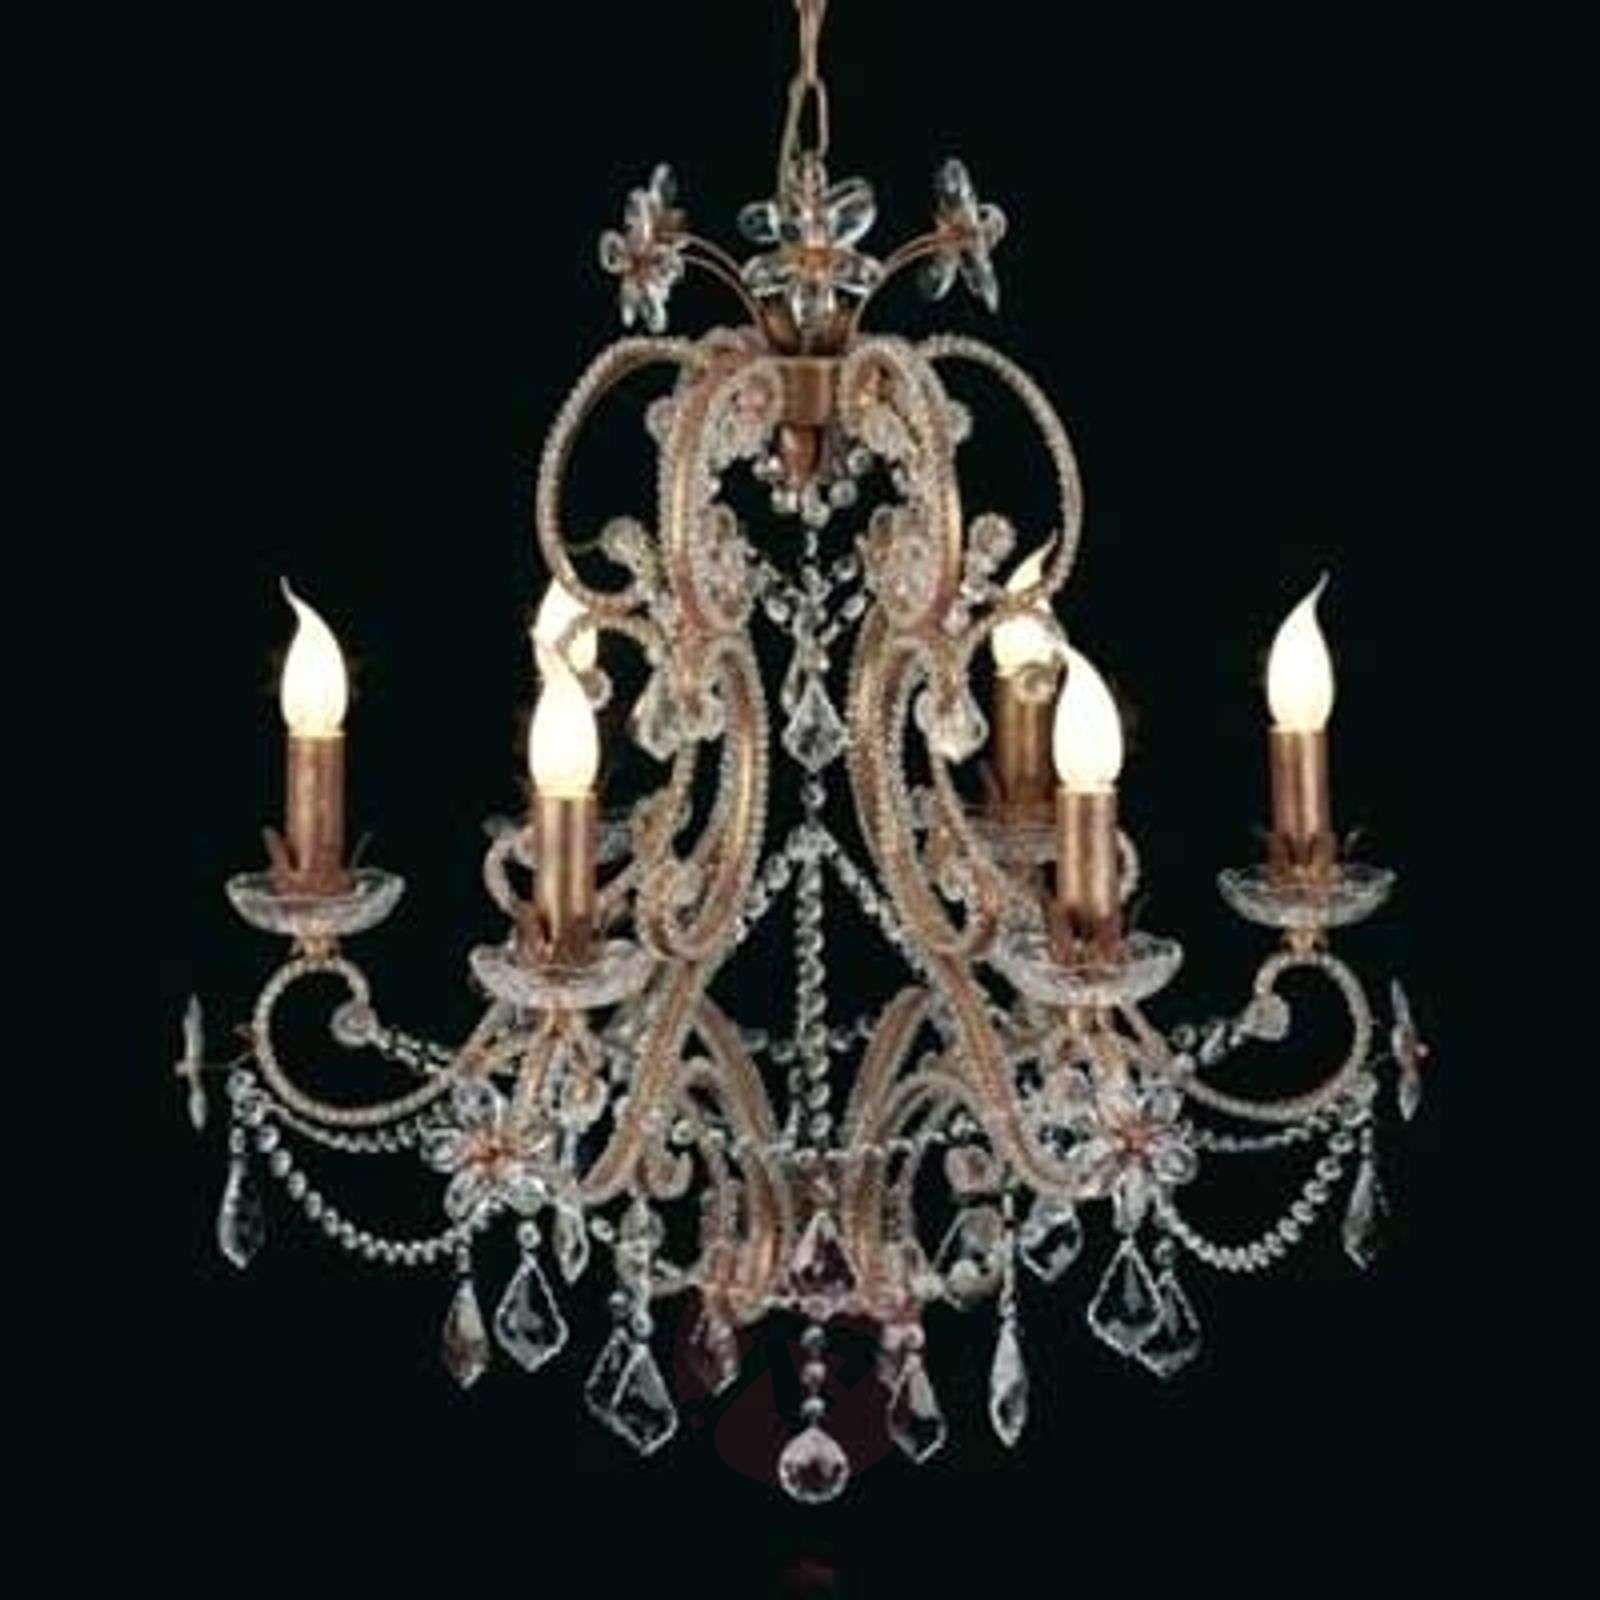 BENETTA chandelier, rich in details-1032222-01